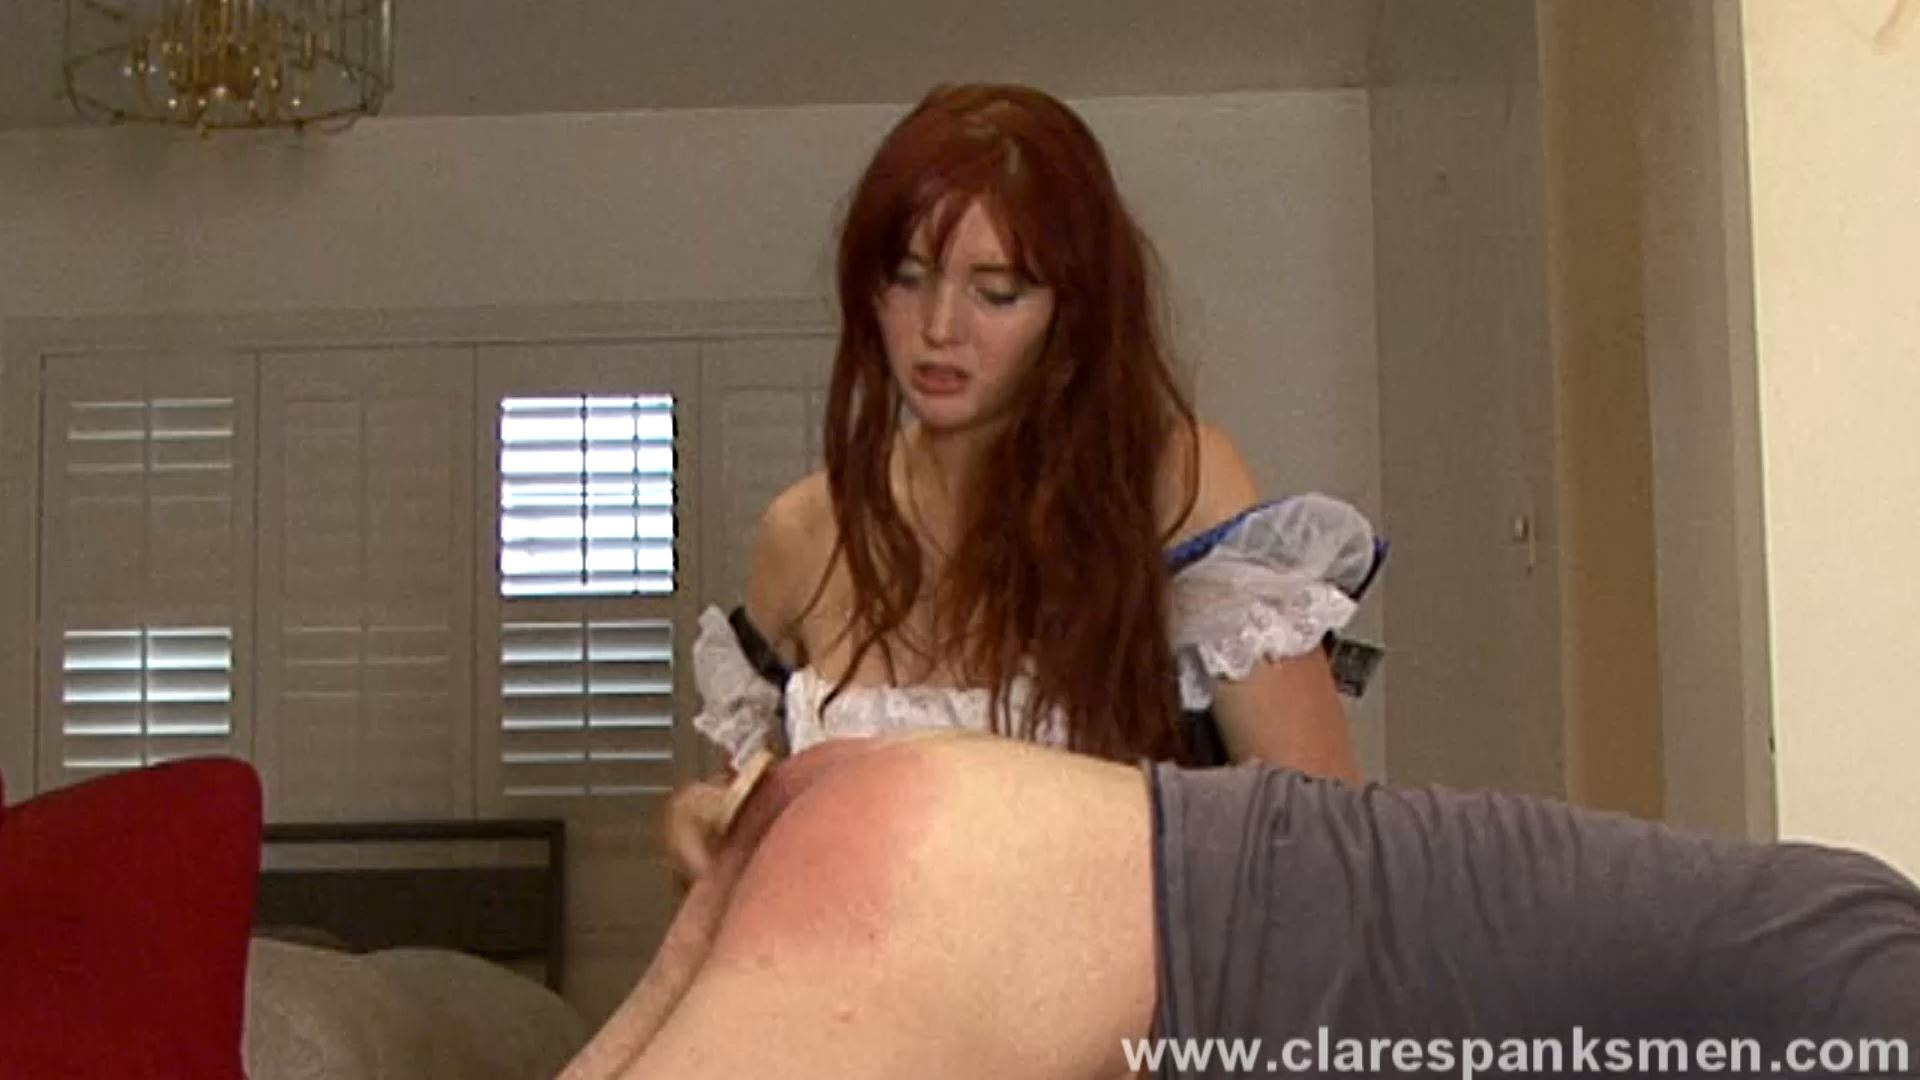 Audrey Tate In Scene: Beergirl Spanks Customer - CLARESPANKSMEN - FULL HD/1080p/MP4